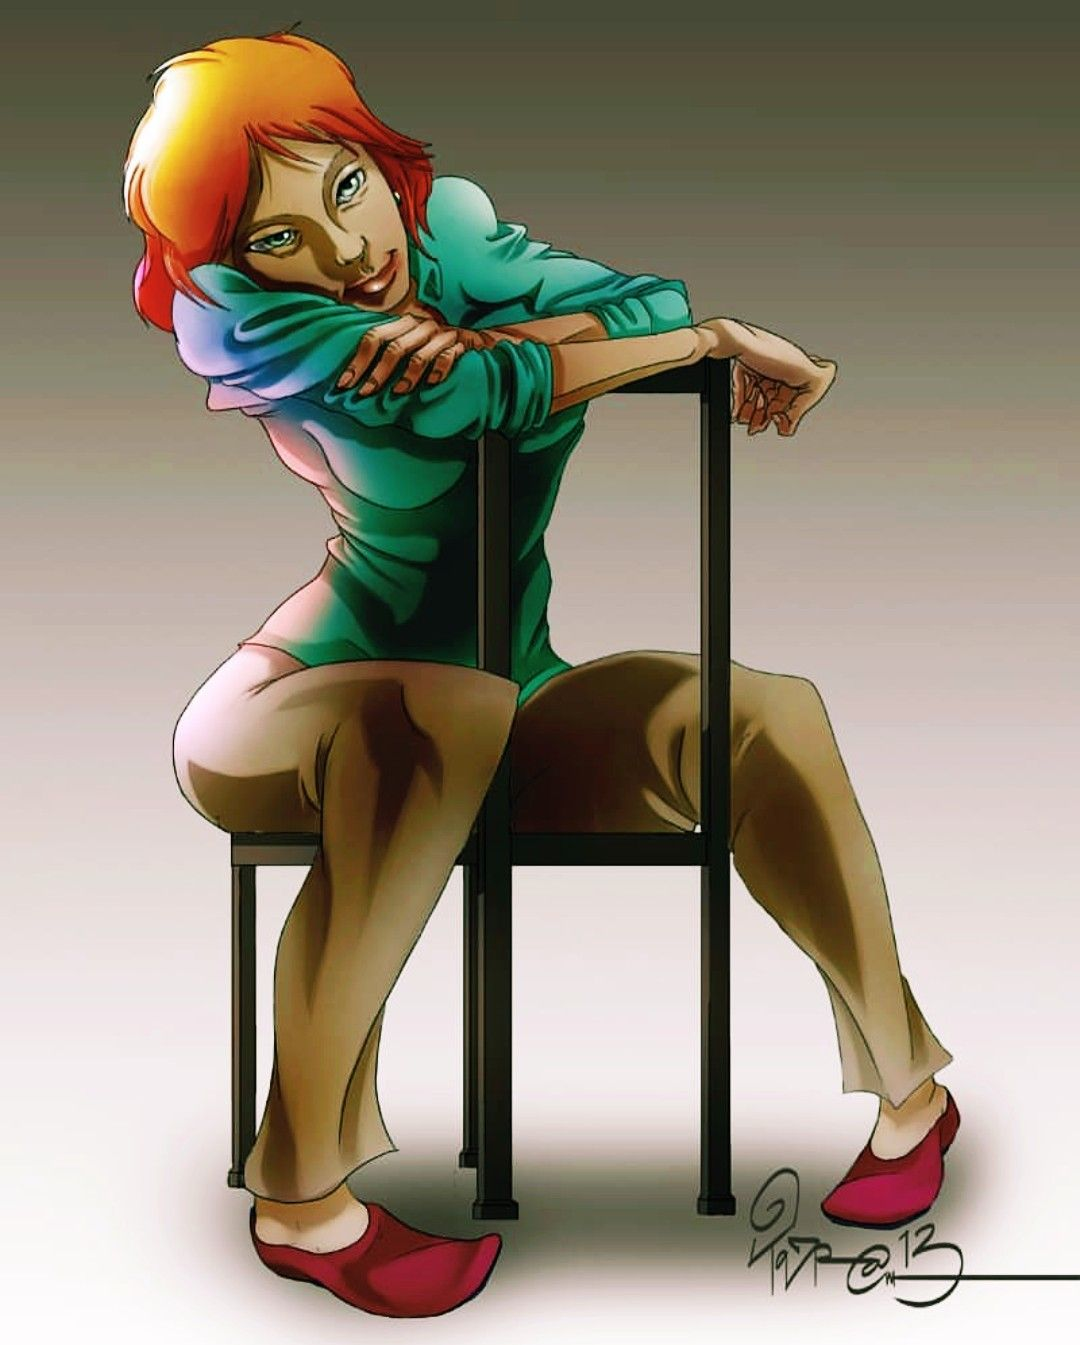 Family Guy's Lois Griffin Lois griffin, Family guys